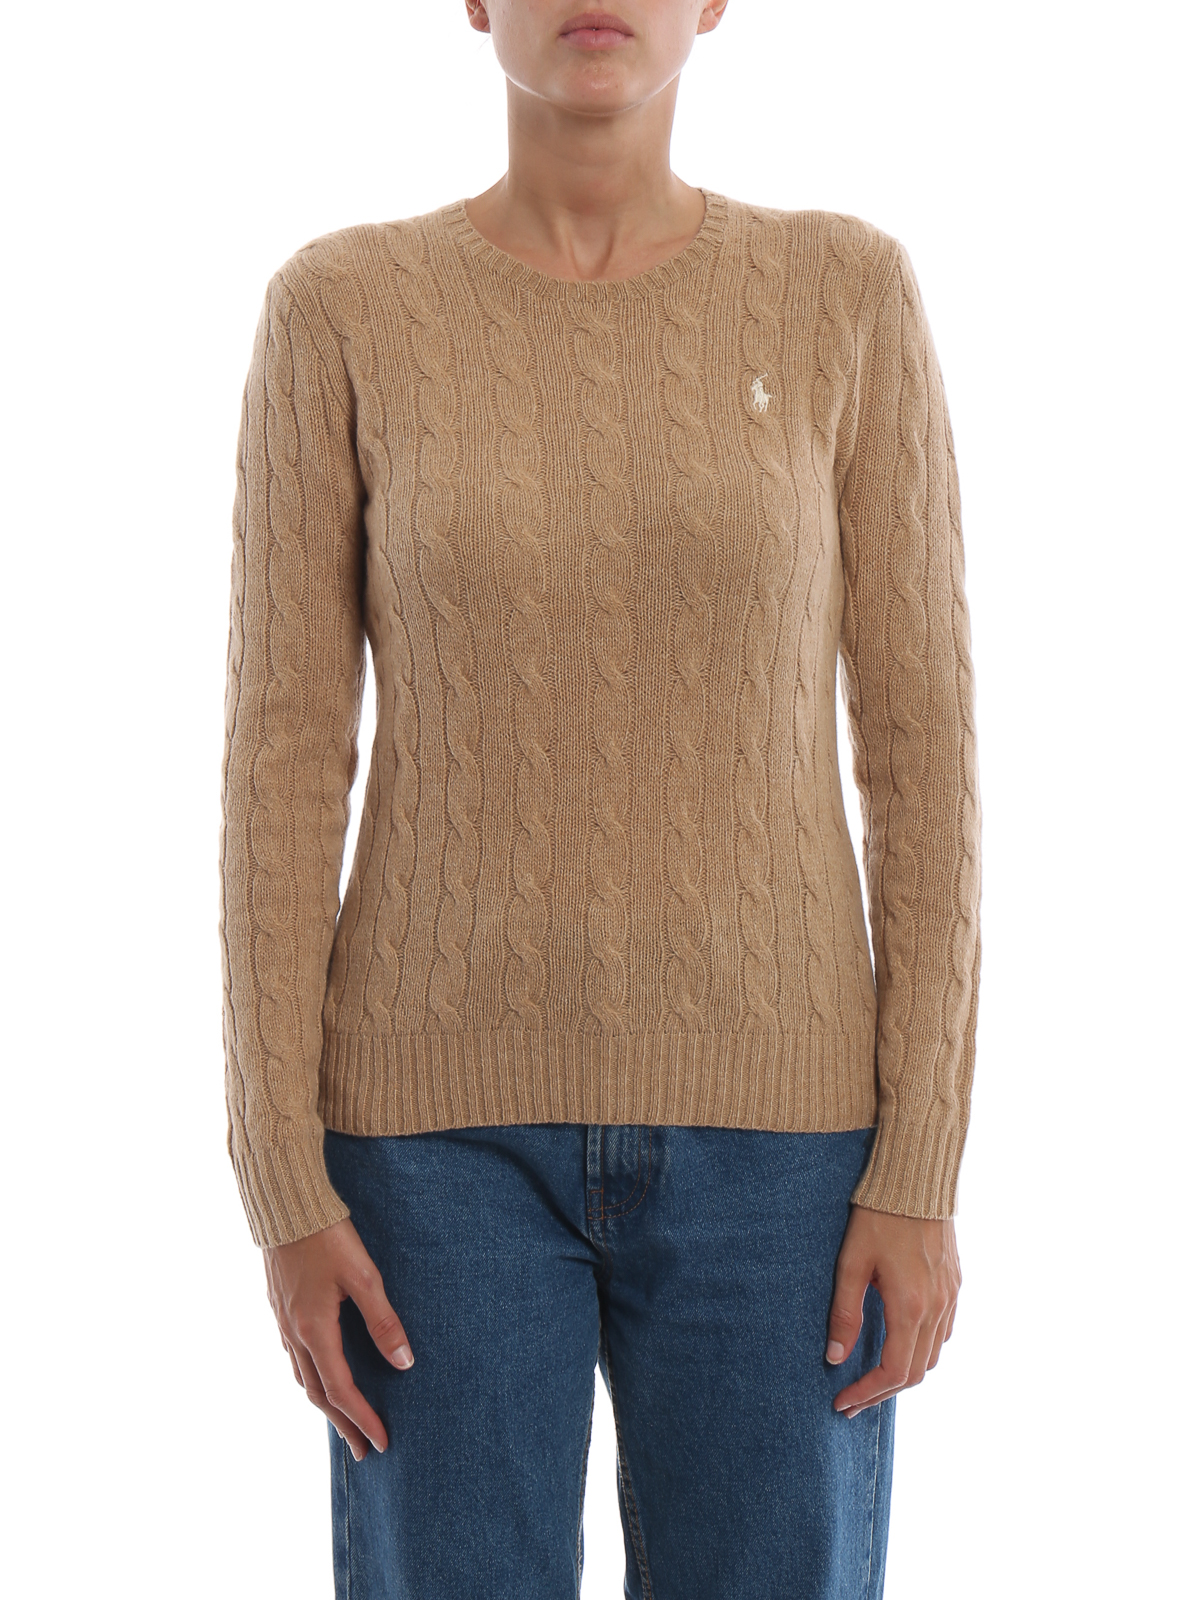 5a2e75b05 iKRIX POLO RALPH LAUREN  crew necks - Camel cable knit merino and cashmere  sweater